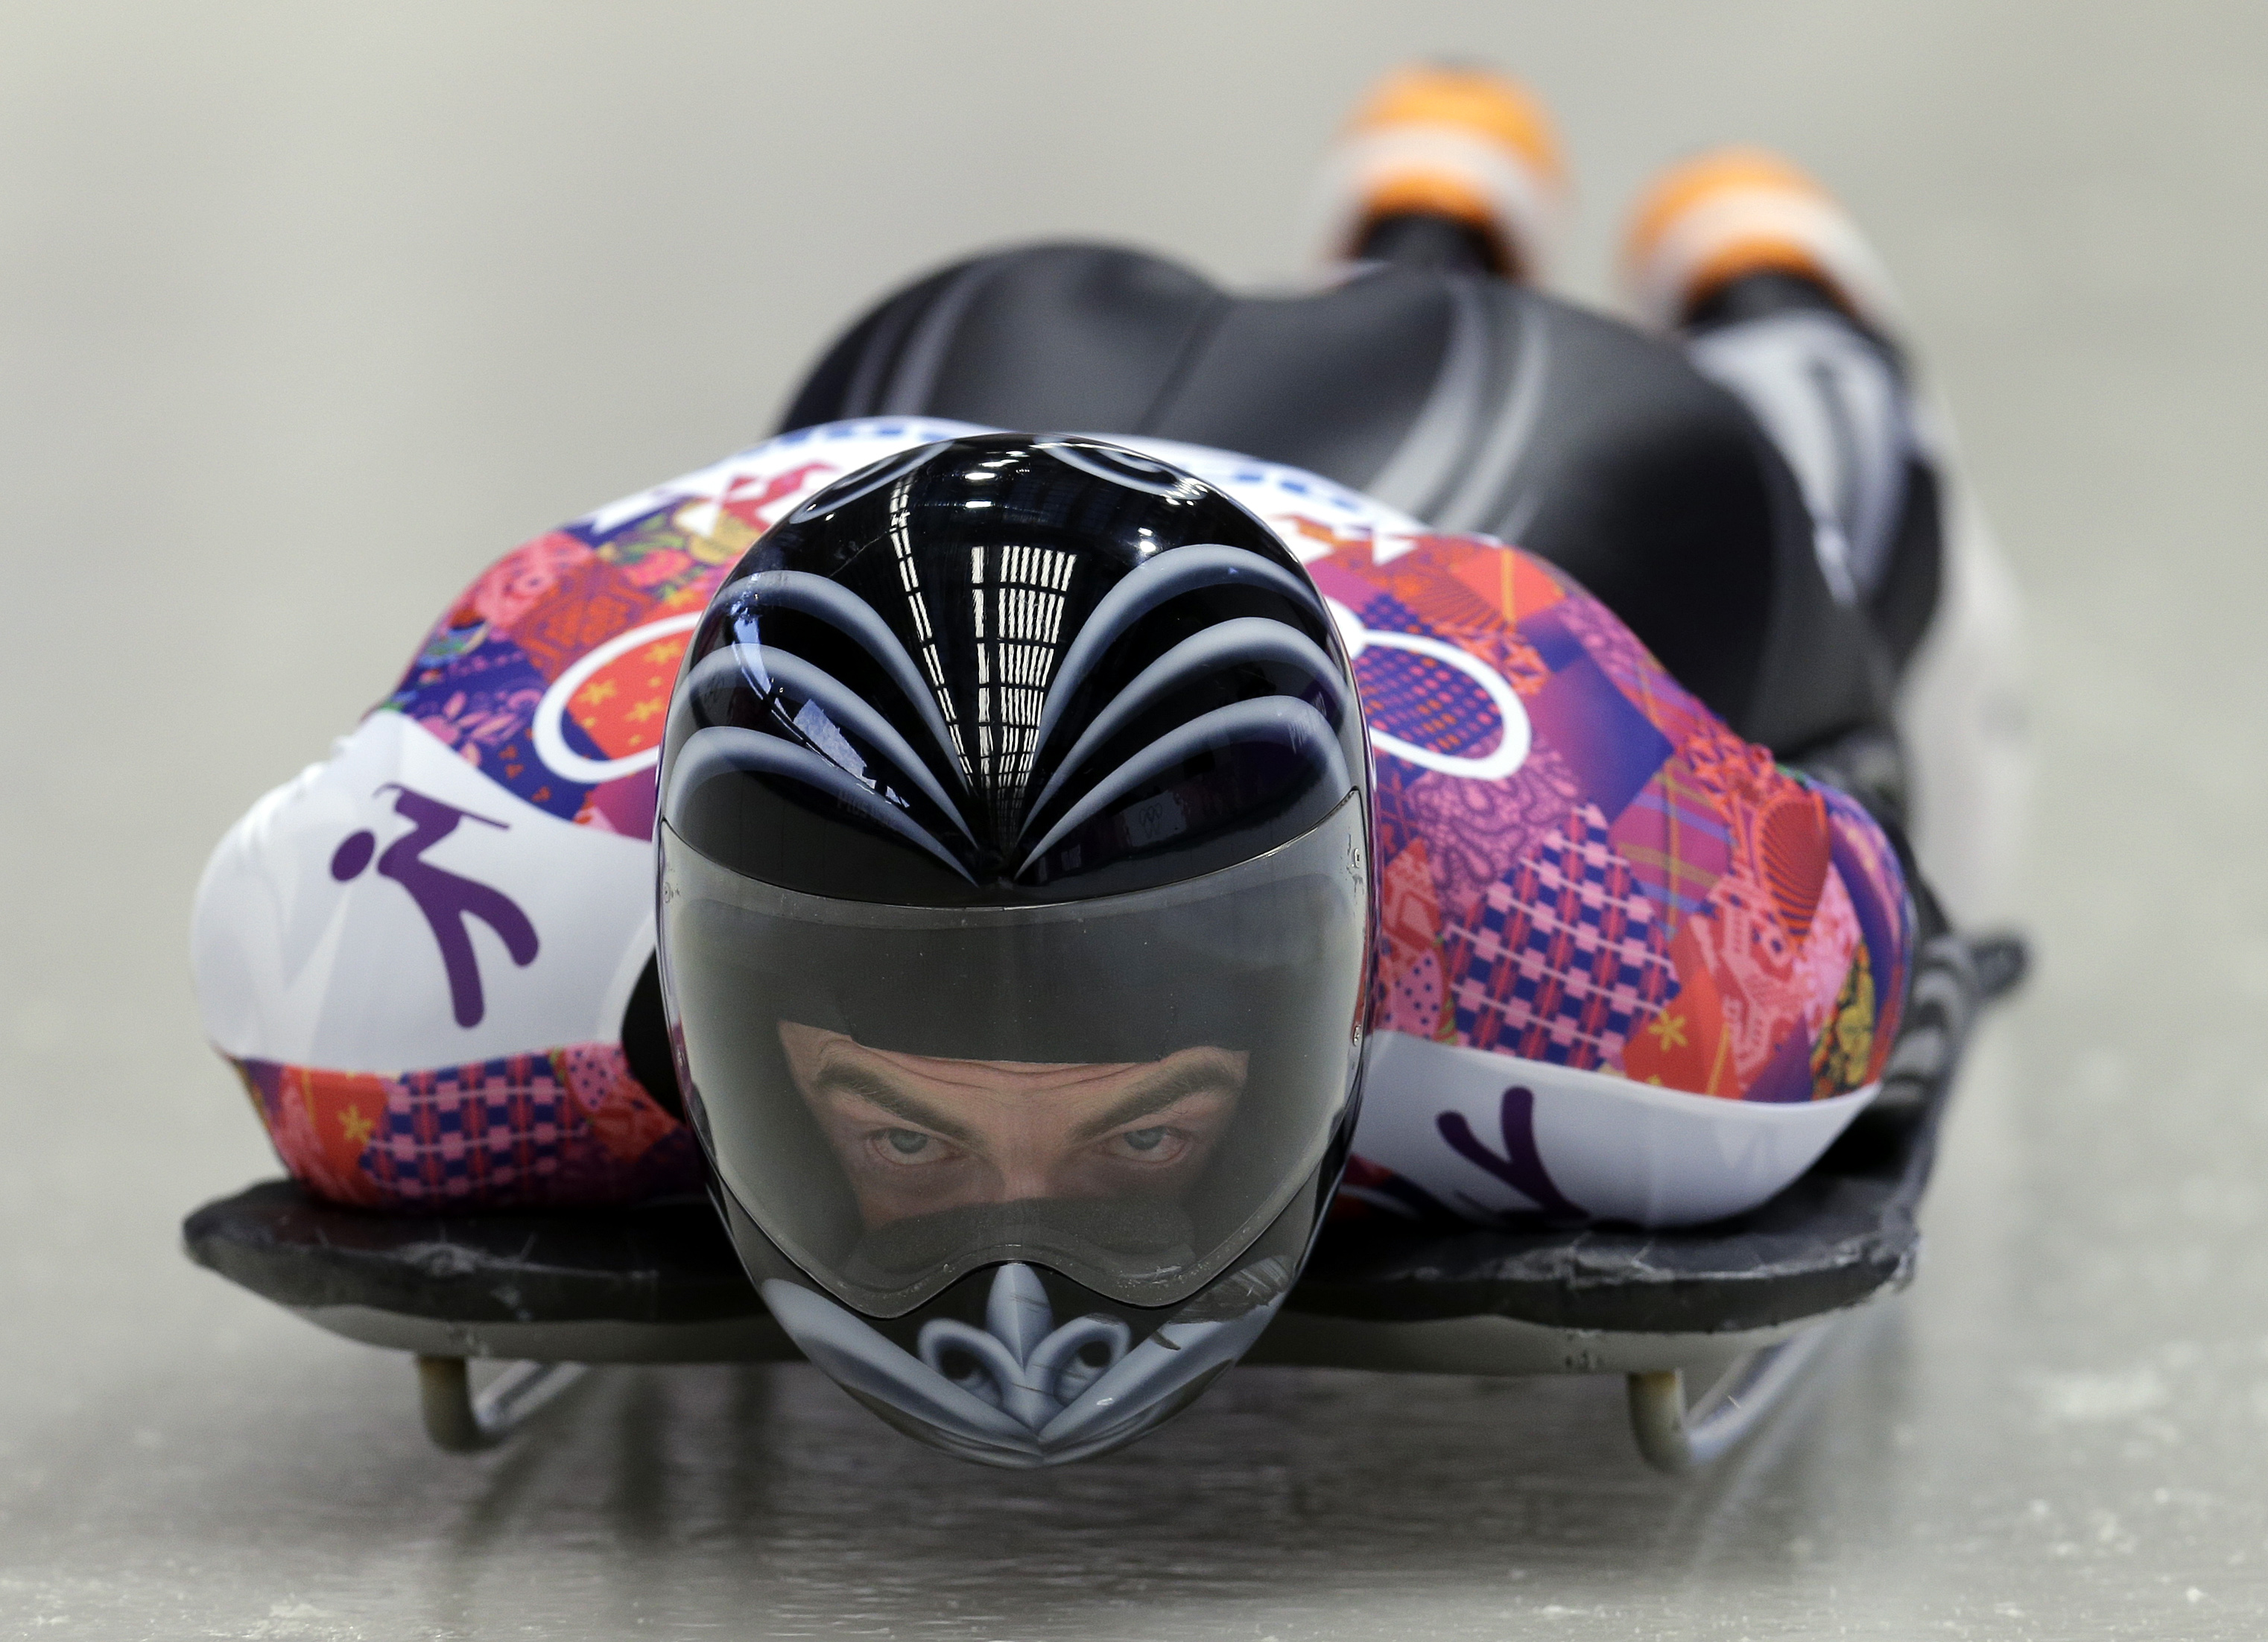 Ben Sandford of New Zealand starts his first run during the men's skeleton competition at the 2014 Winter Olympics, Friday, Feb. 14, 2014, in Krasnaya Polyana, Russia. (AP Photo/Natacha Pisarenko)